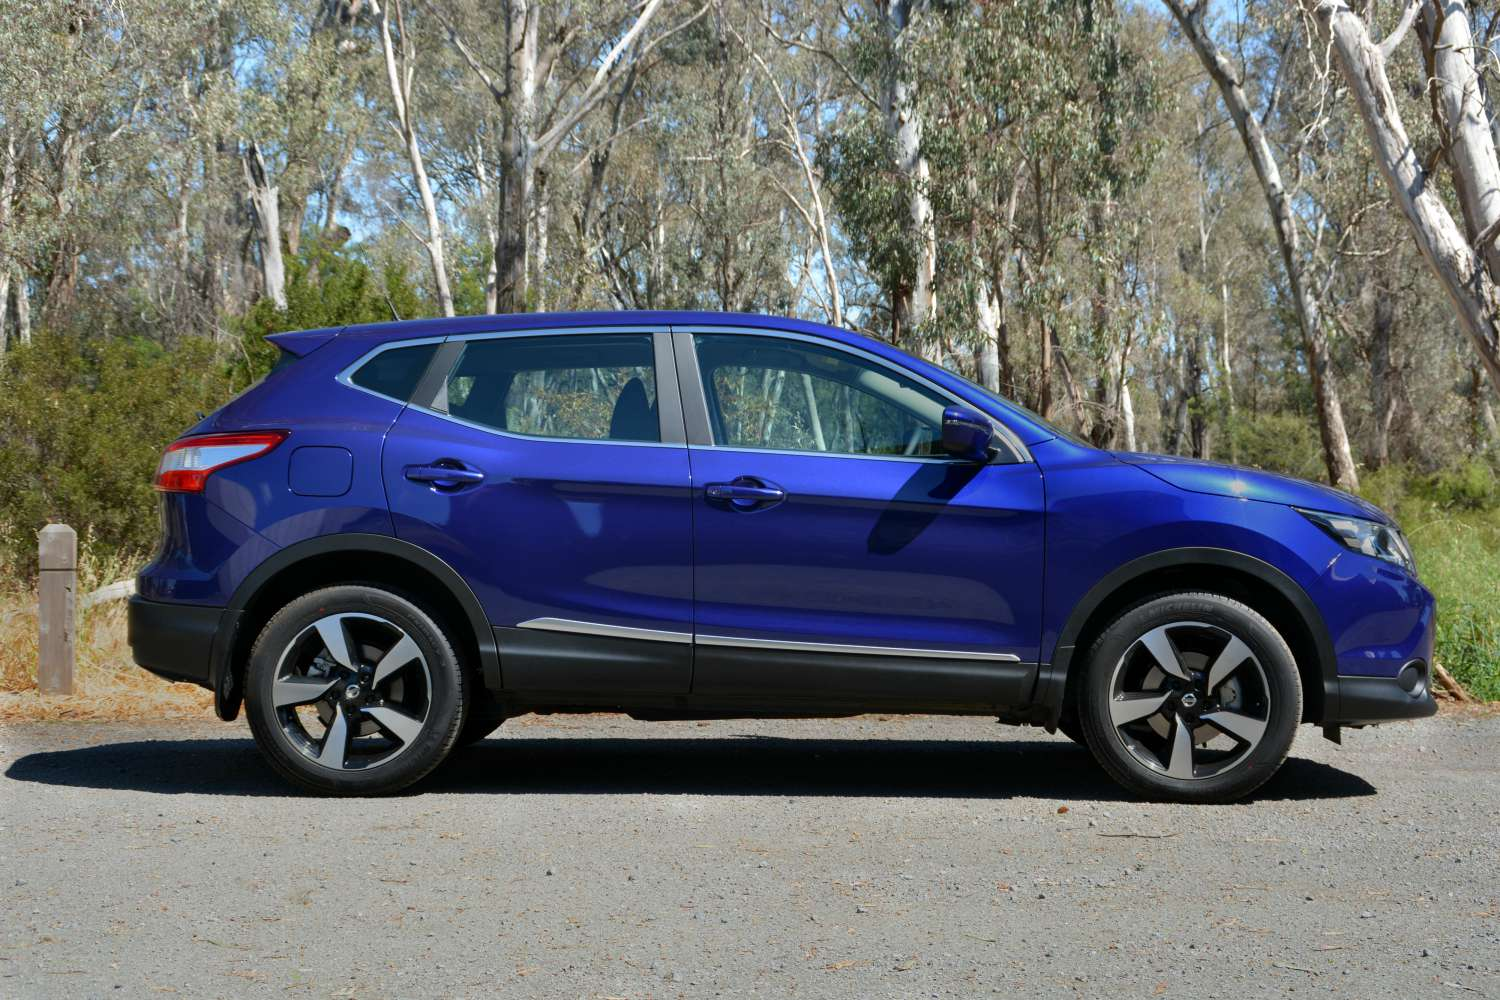 2017 Nissan Qashqai Review - CarConversation | Independent